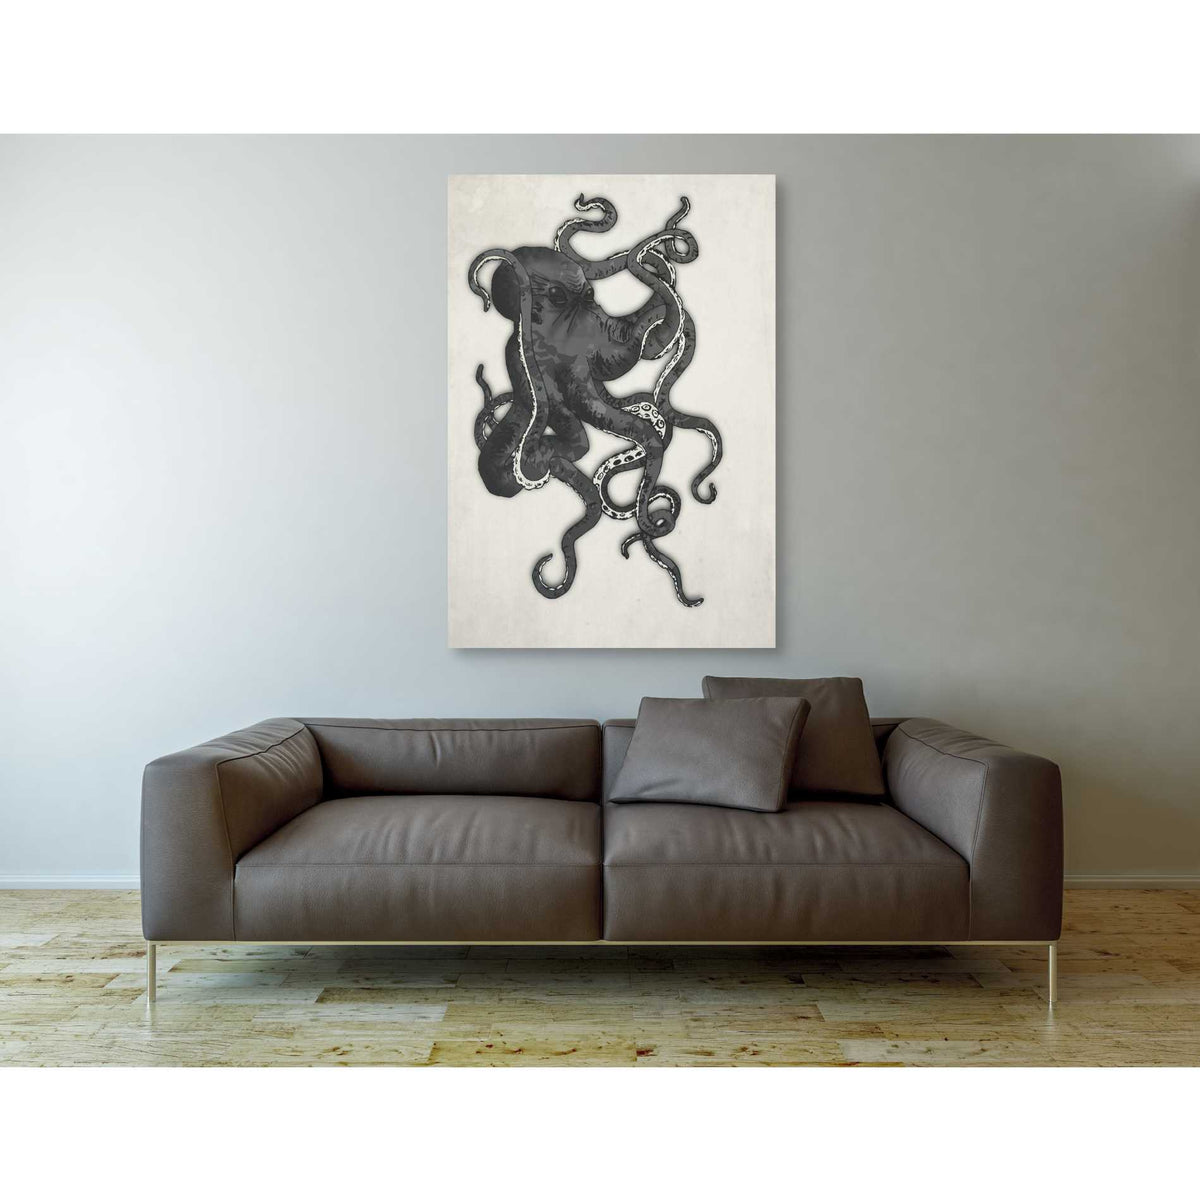 Cortesi Home 'Octopus' by Nicklas Gustafsson, Canvas Wall Art,40 x 60